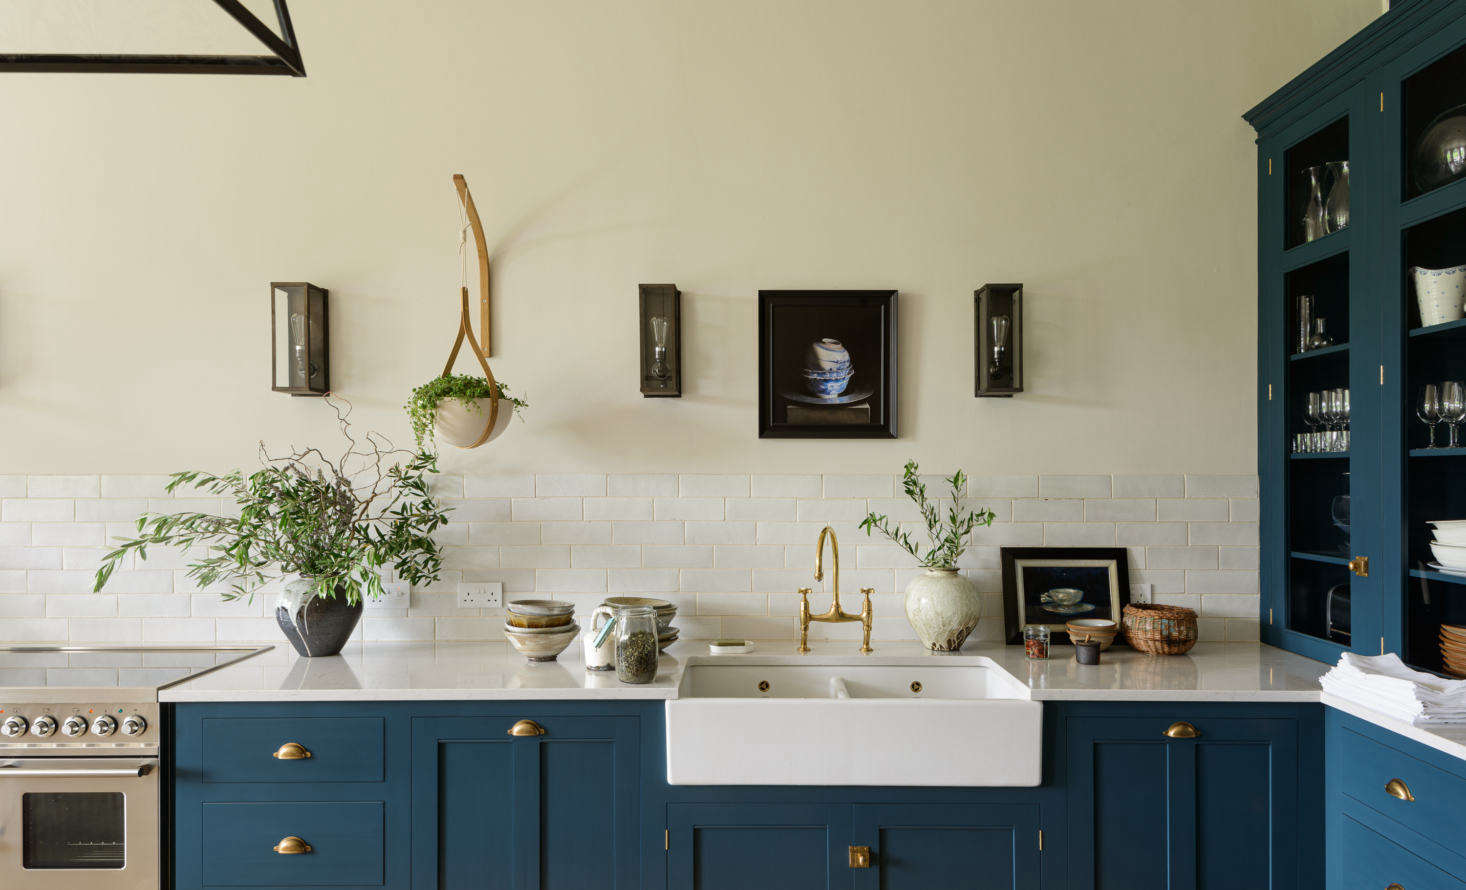 I first spied the Tom Raffield-designed planter while writing this story: Kitchen of the Week: An Imposing English Manor, Updated for Modern Family Life. Photograph courtesy of deVOL.